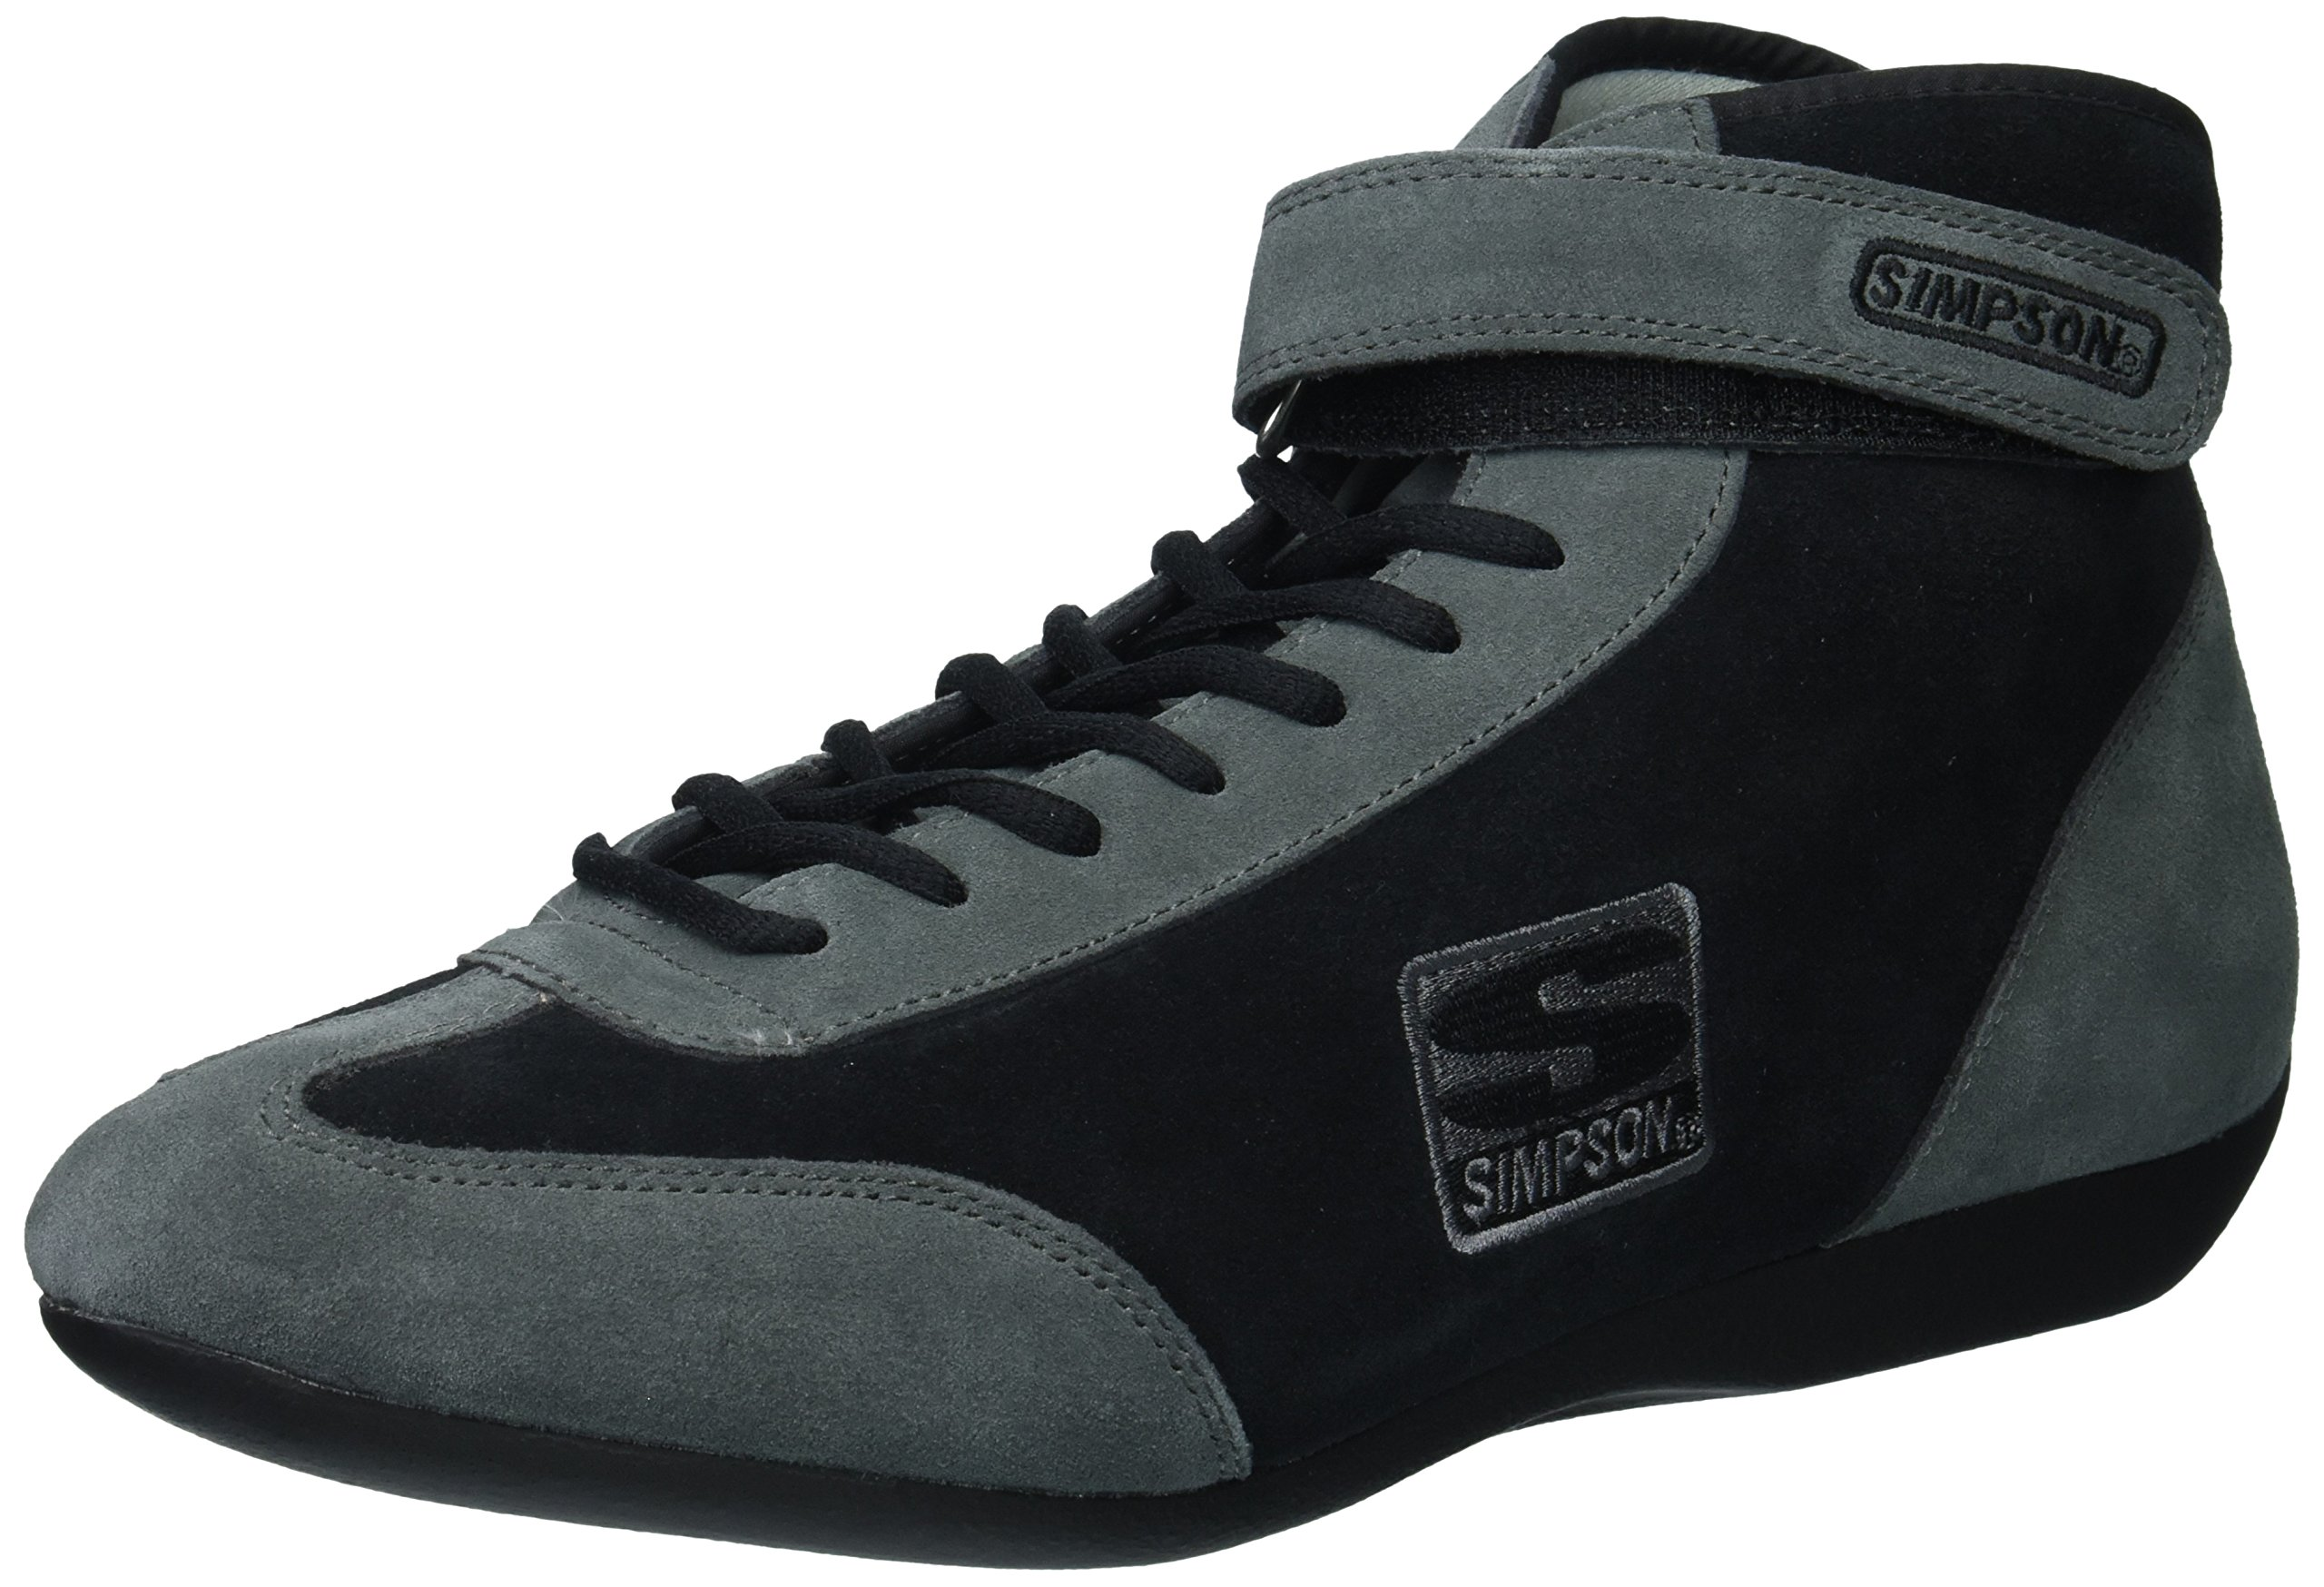 Simpson MT120BK Shoes